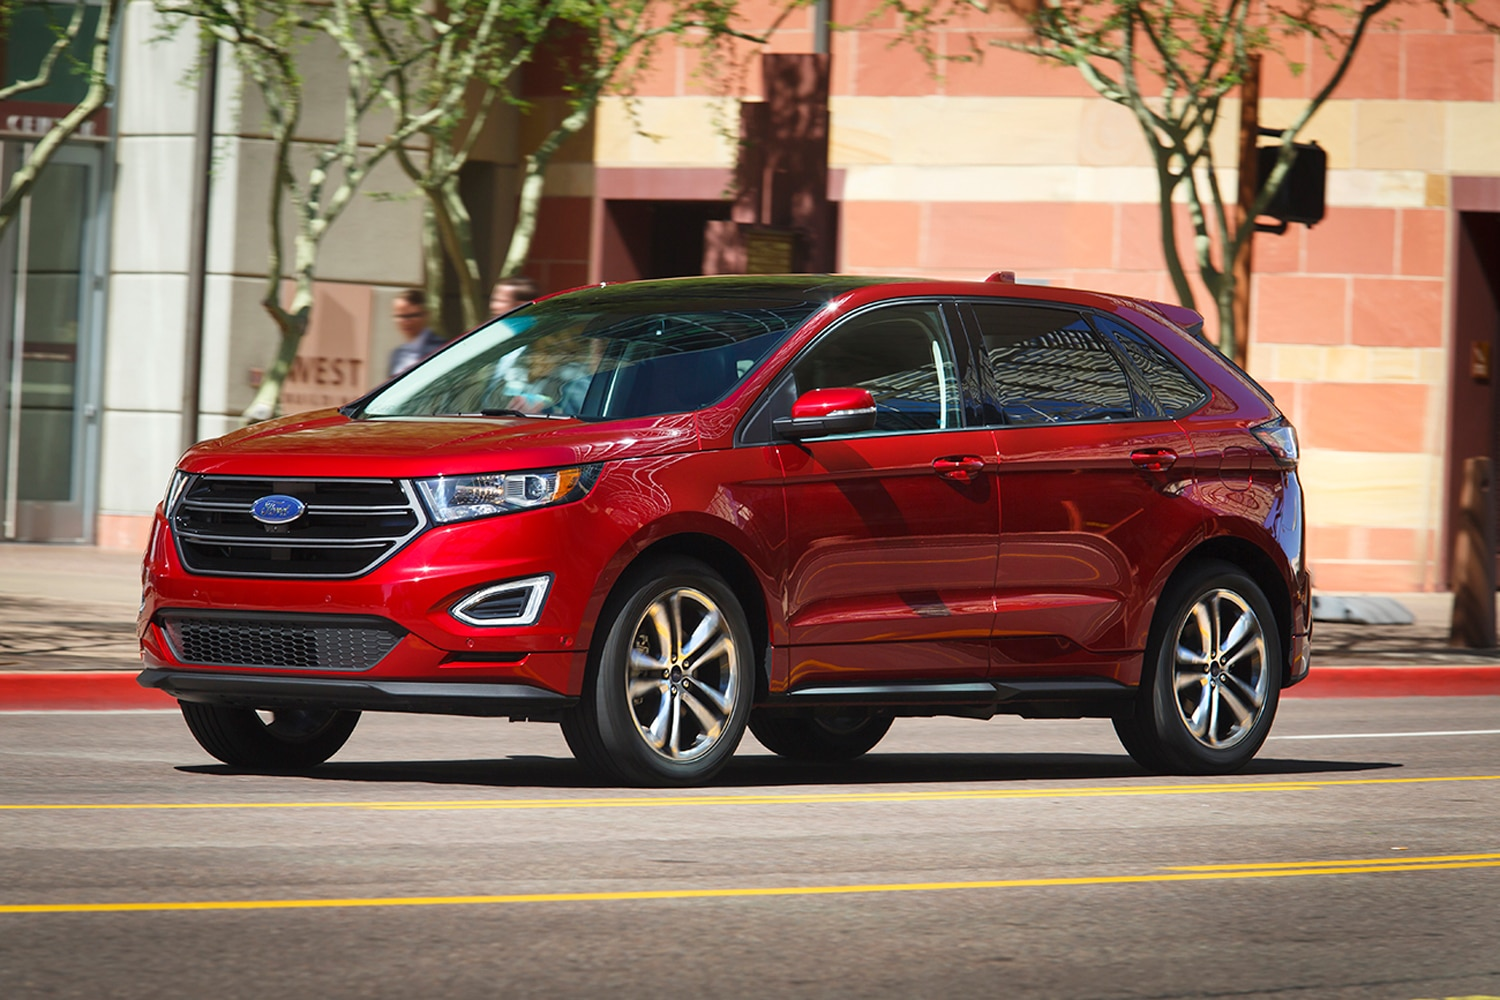 2015 ford edge review - 2015 Ford Edge Magnetic